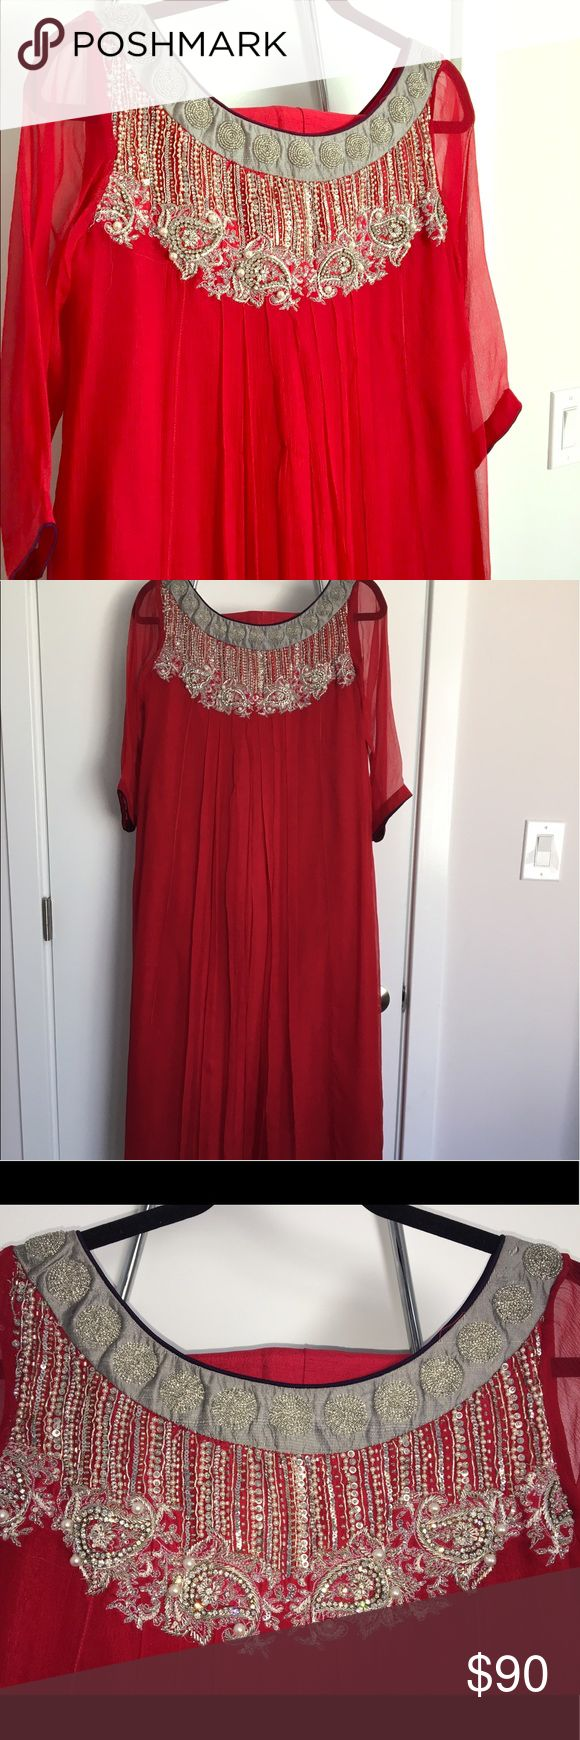 Red Chiffon Salwar Kameez Dress by HSY Red Chiffon dress by HSY R2W collection, in size medium. Beautifully embellished neckline with silver embroidery. Red silk trouser included. Size medium, but big enough to fit a large also. Other